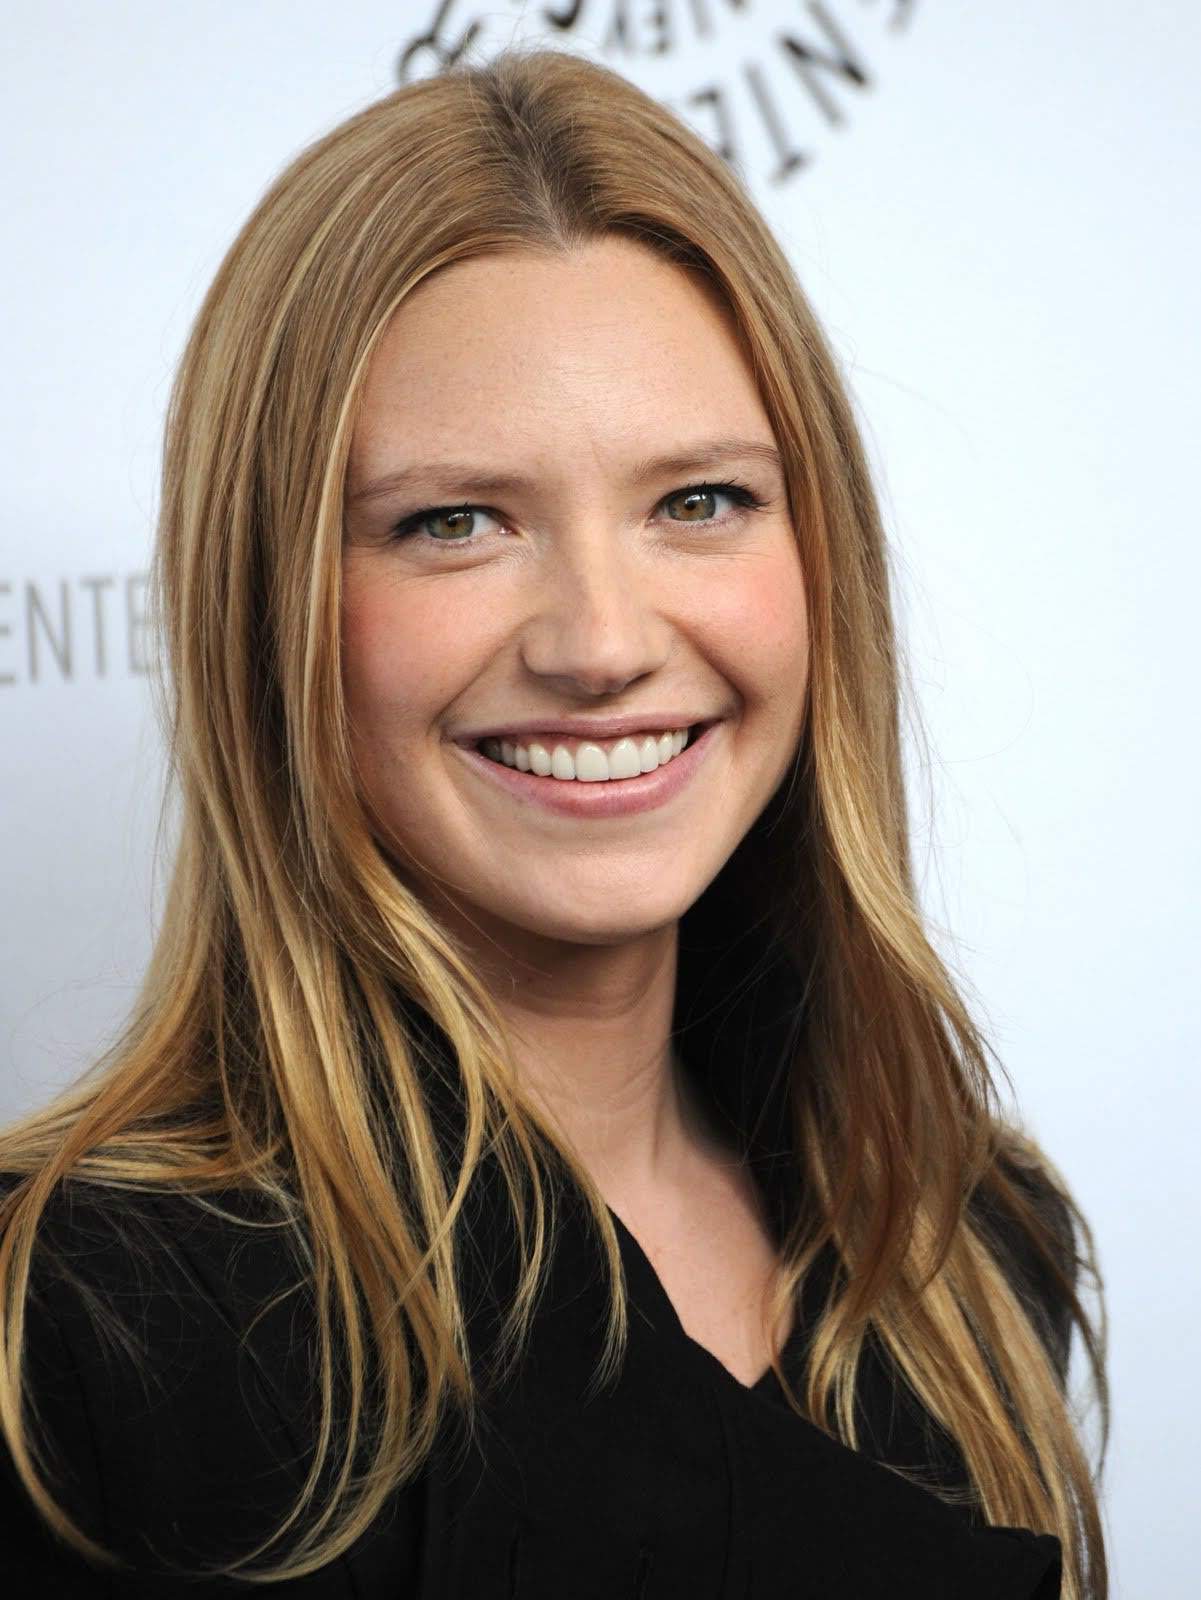 Keanu Reeves and Roland Emmerich produce New Angeles - Anna Torv in Minority Report TV